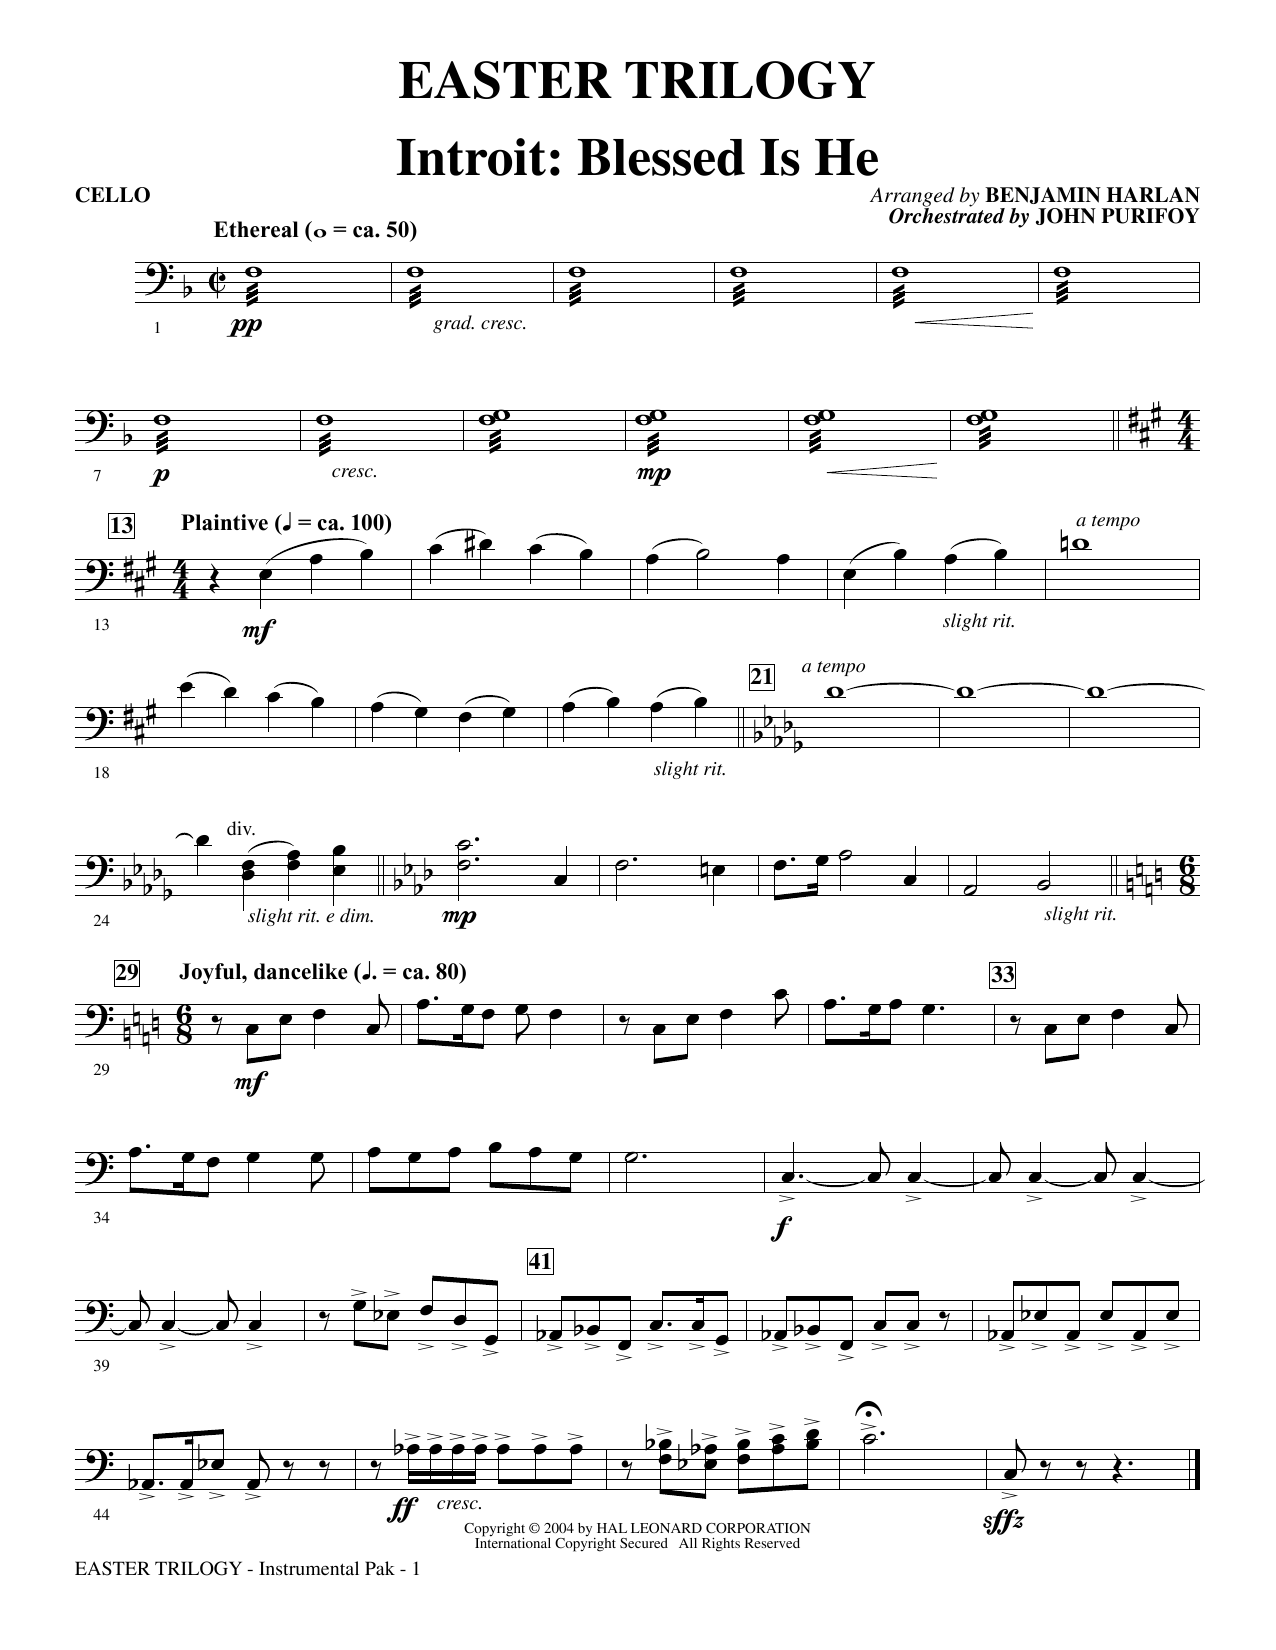 Easter Trilogy: A Cantata in Three Suites (Full Orchestra) - Cello Sheet Music